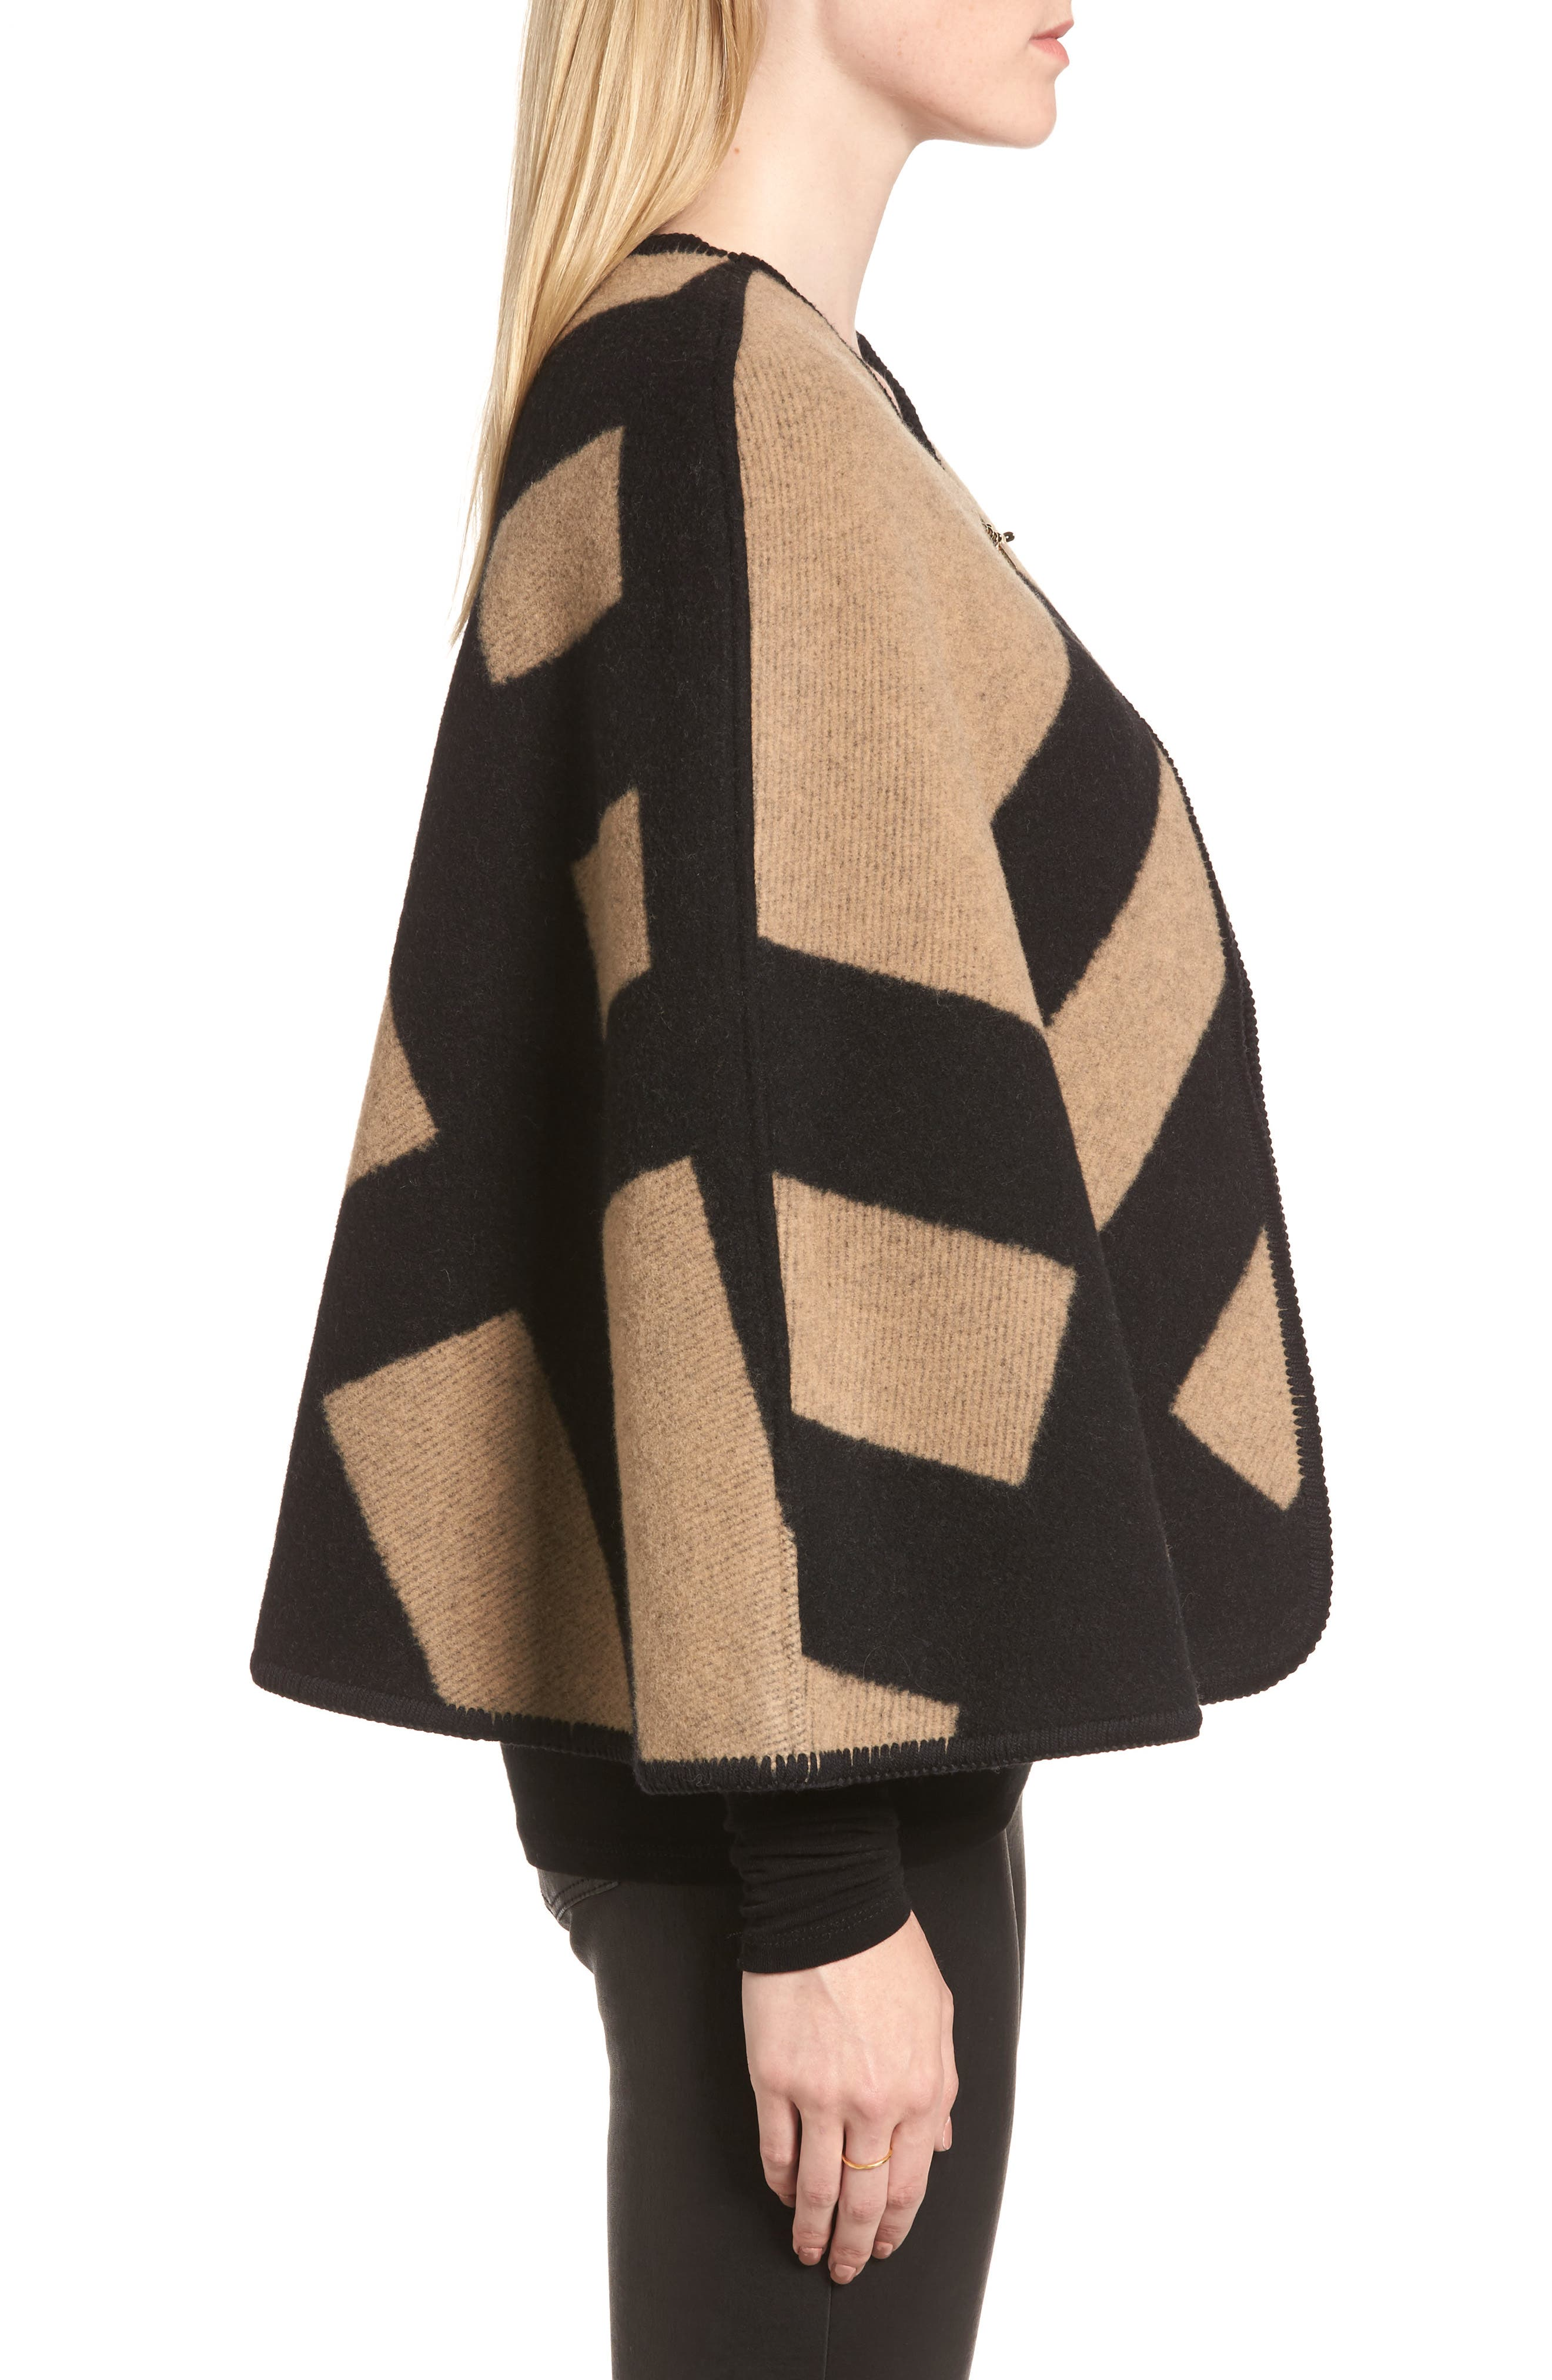 Blanket Check Wool & Cashmere Poncho,                             Alternate thumbnail 3, color,                             Camel/ Black